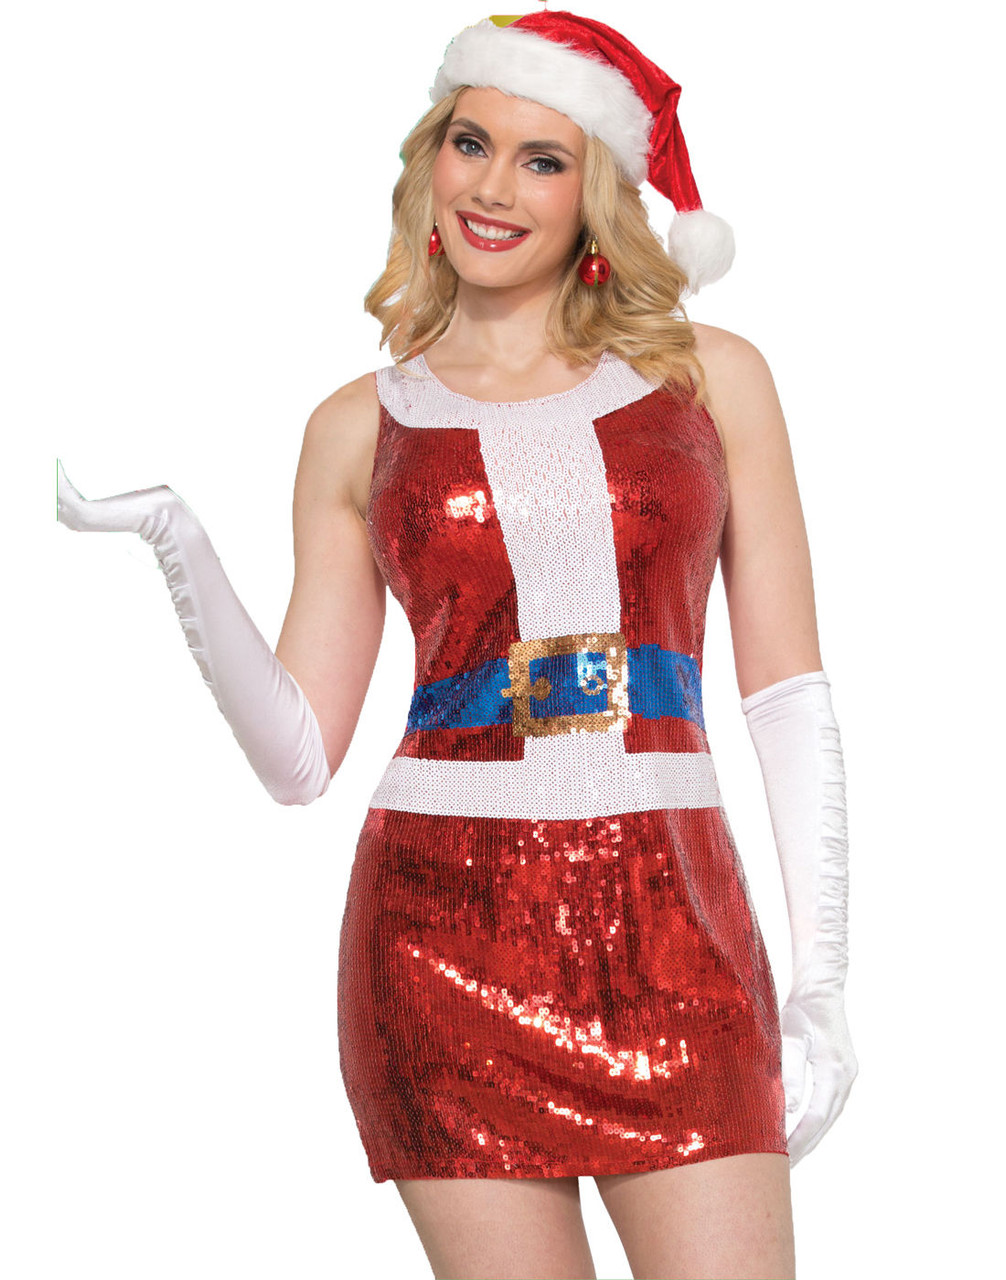 0cf8333038d8 Sexy Mrs. Santa Claus Sparkly Red Sequins Costume Fancy Dress Christmas  Women - www.dazzlingcostumes.com